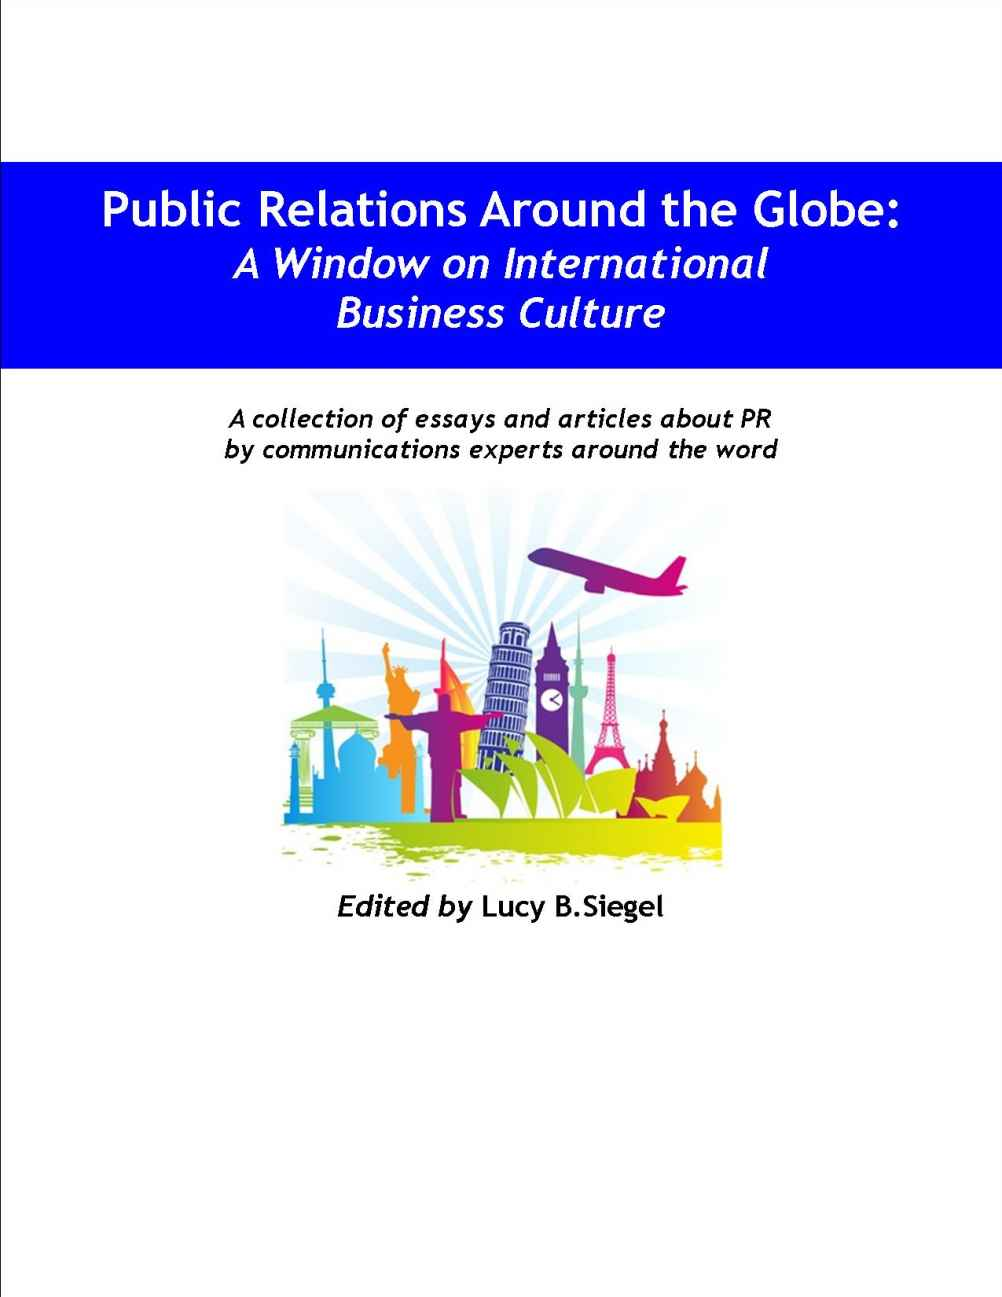 thesis on public relations